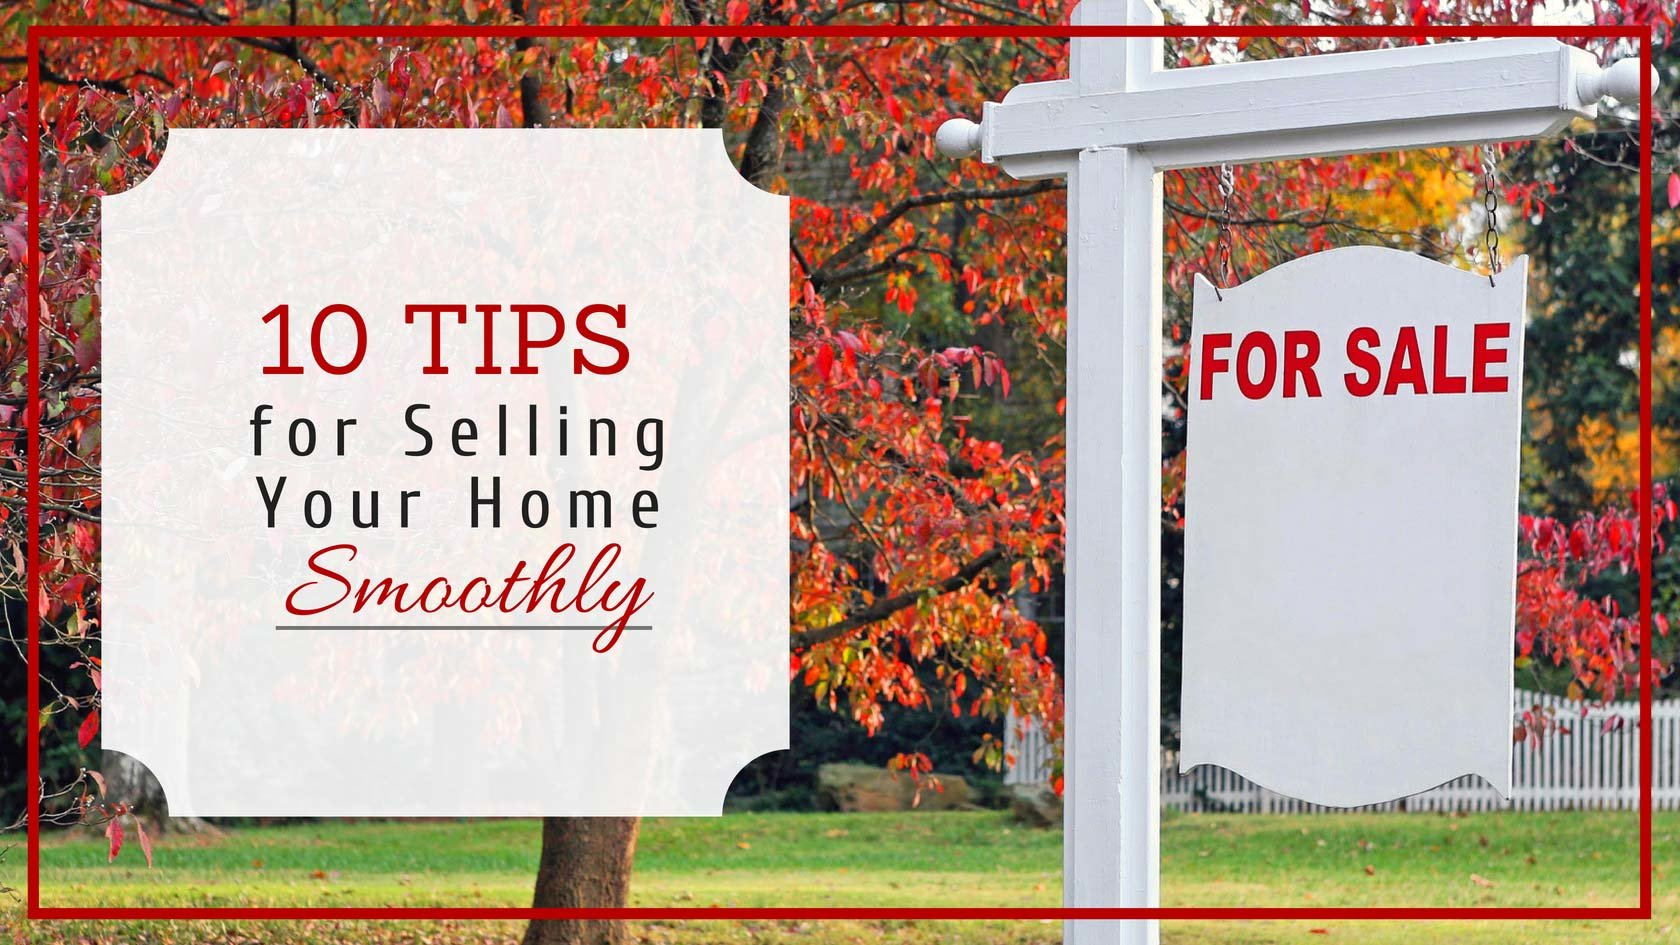 How to Sell Your Home Smoothly